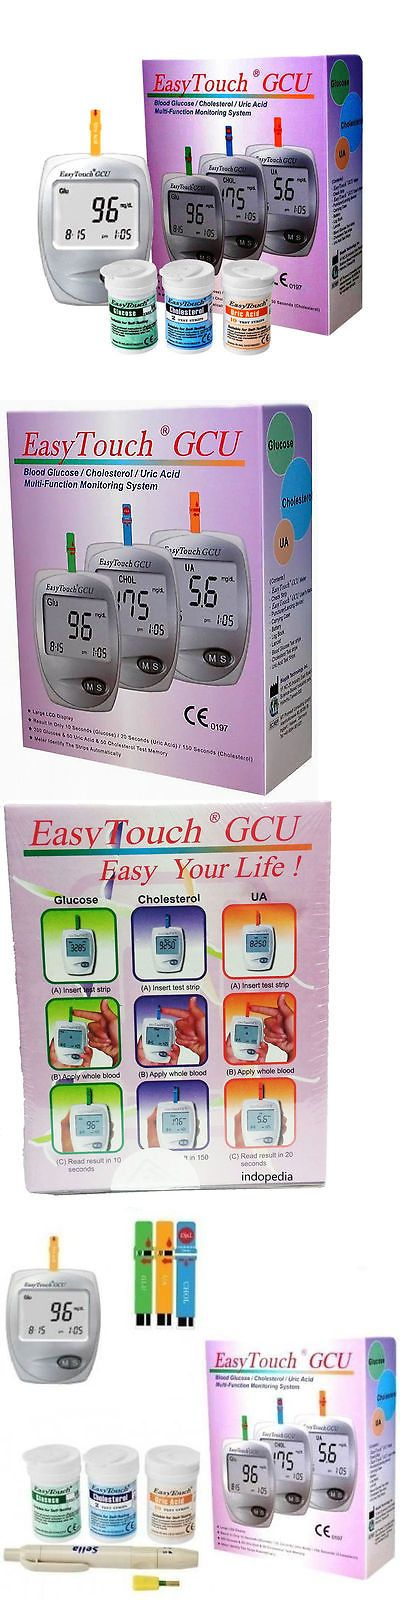 Cholesterol Testing: Easytouch 3 In 1 Monitoring System For Glucose, Cholesterol And Uric Acid -> BUY IT NOW ONLY: $53.3 on eBay!